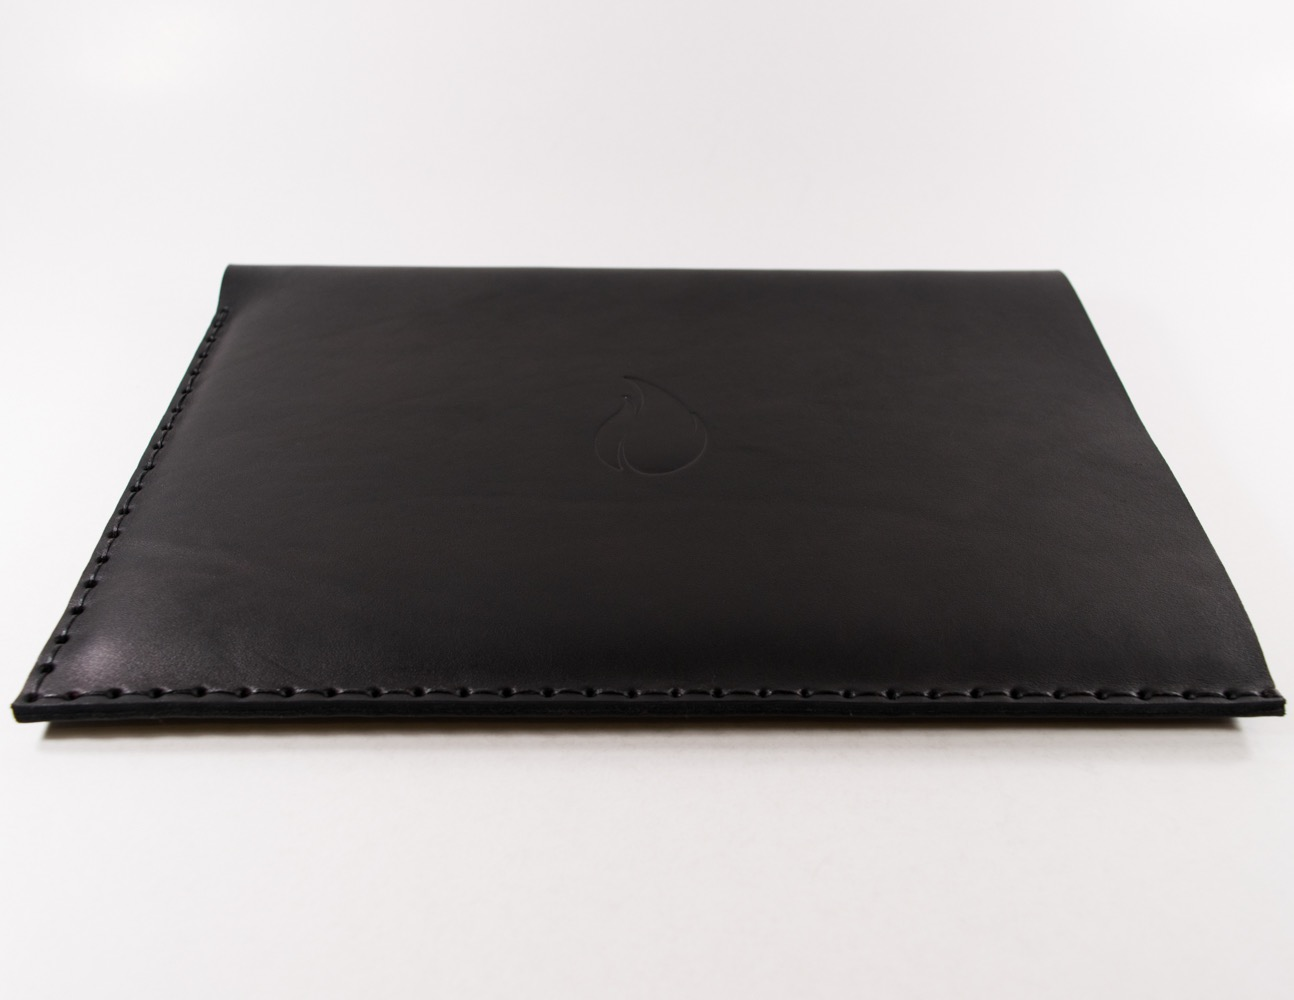 12 inch MacBook Black Thick Natural Leather Sleeve by FireCult